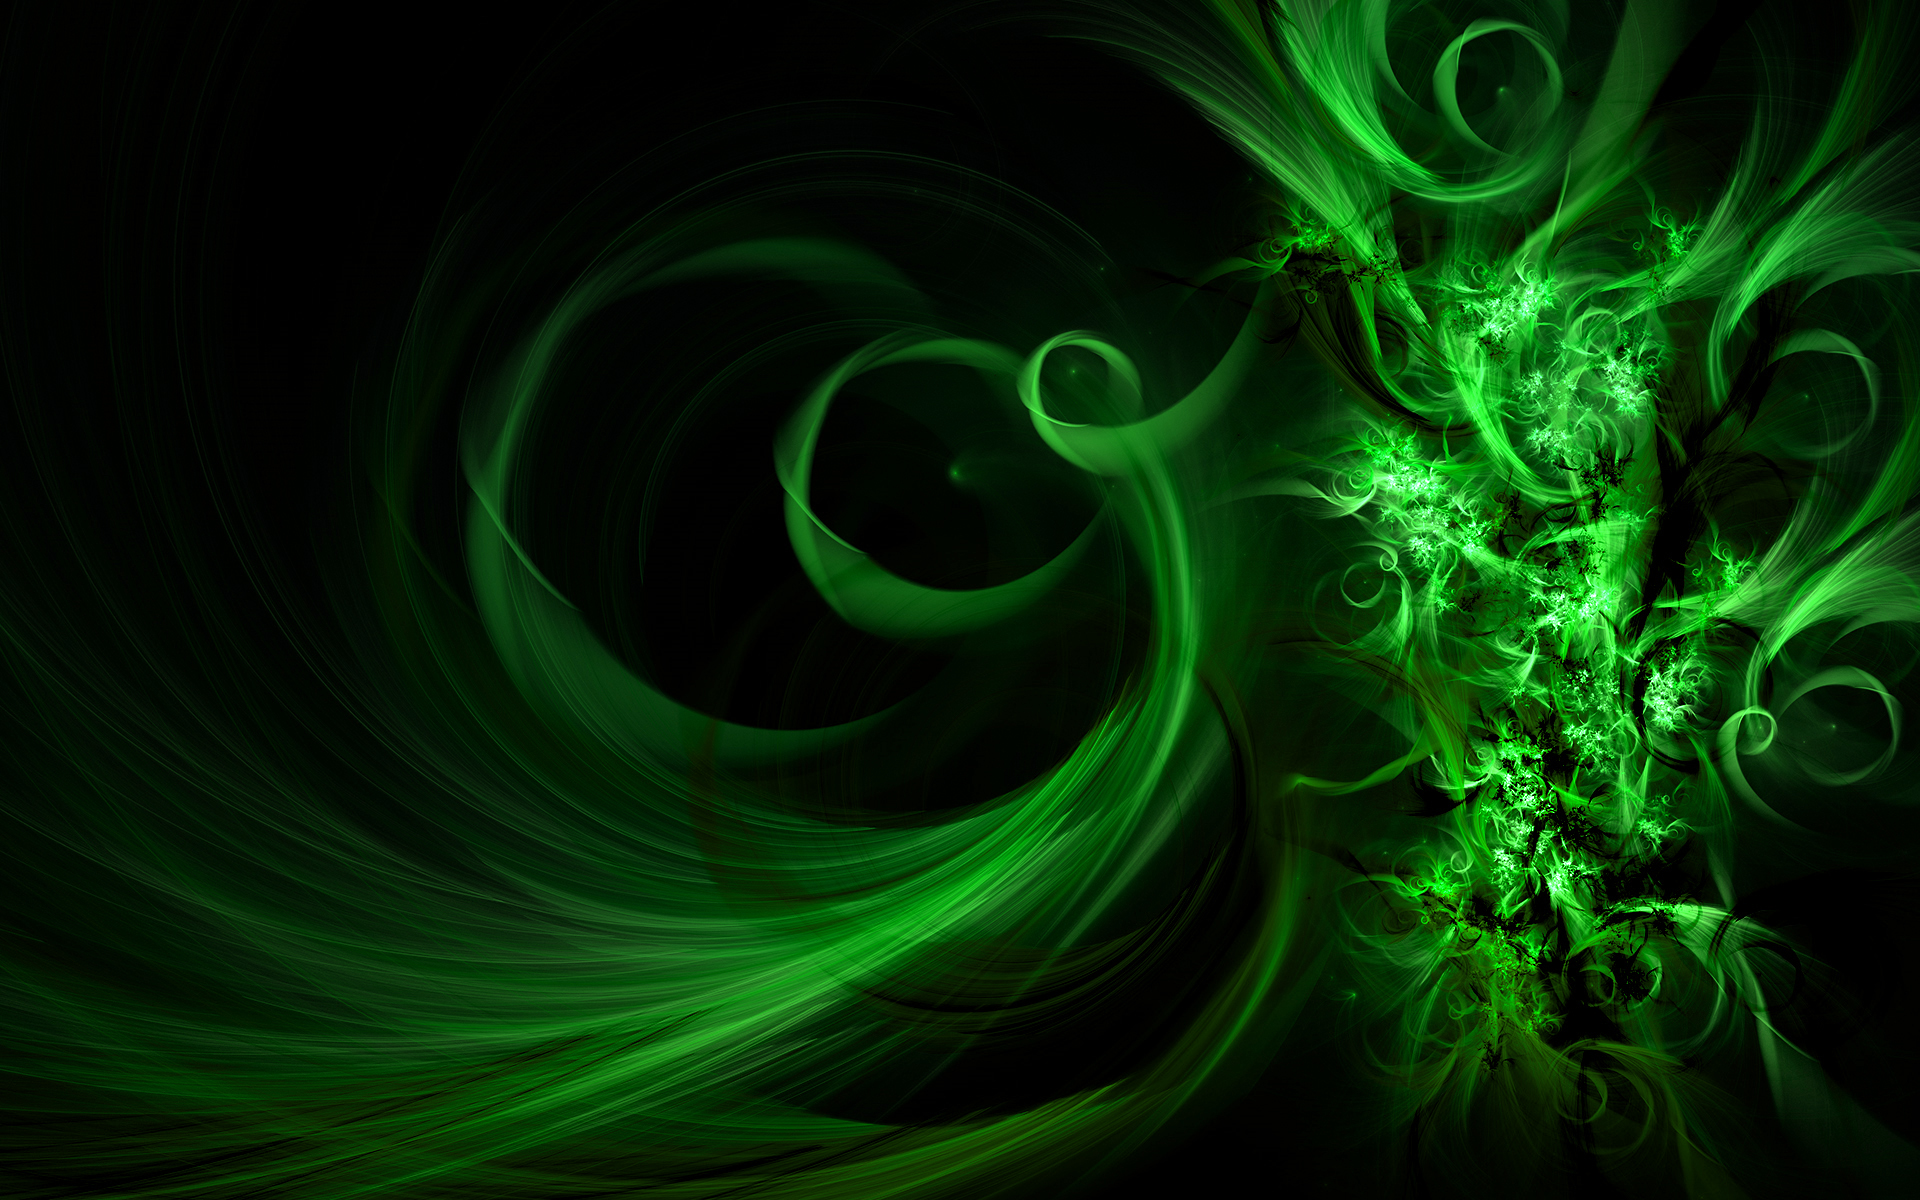 swirly greens widescreen abstract HD Wallpaper